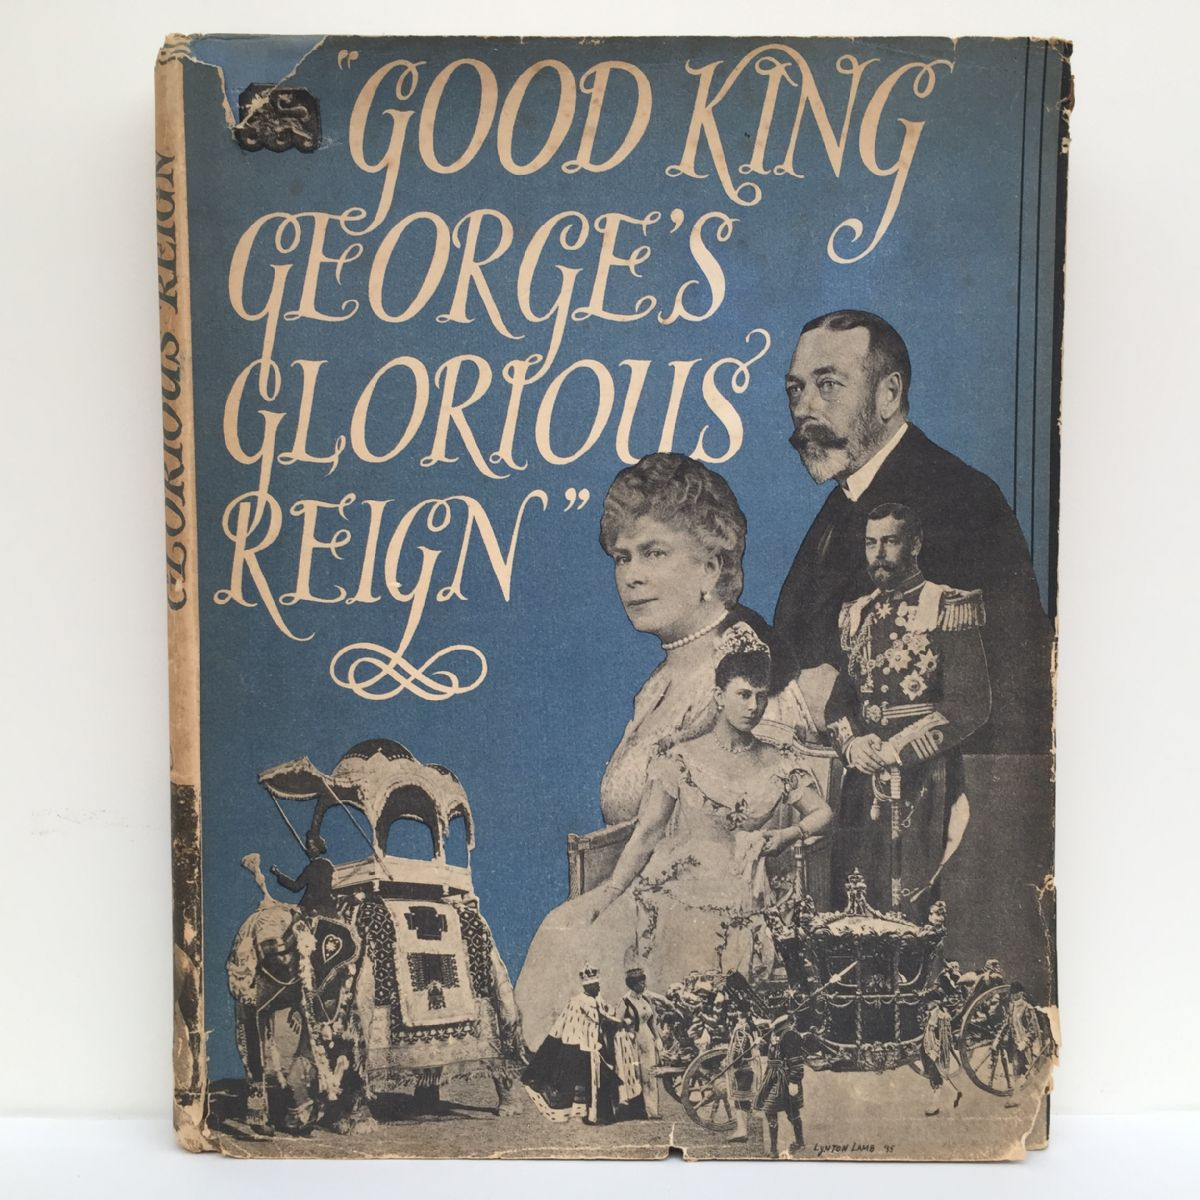 Good King George's Glorious Reign